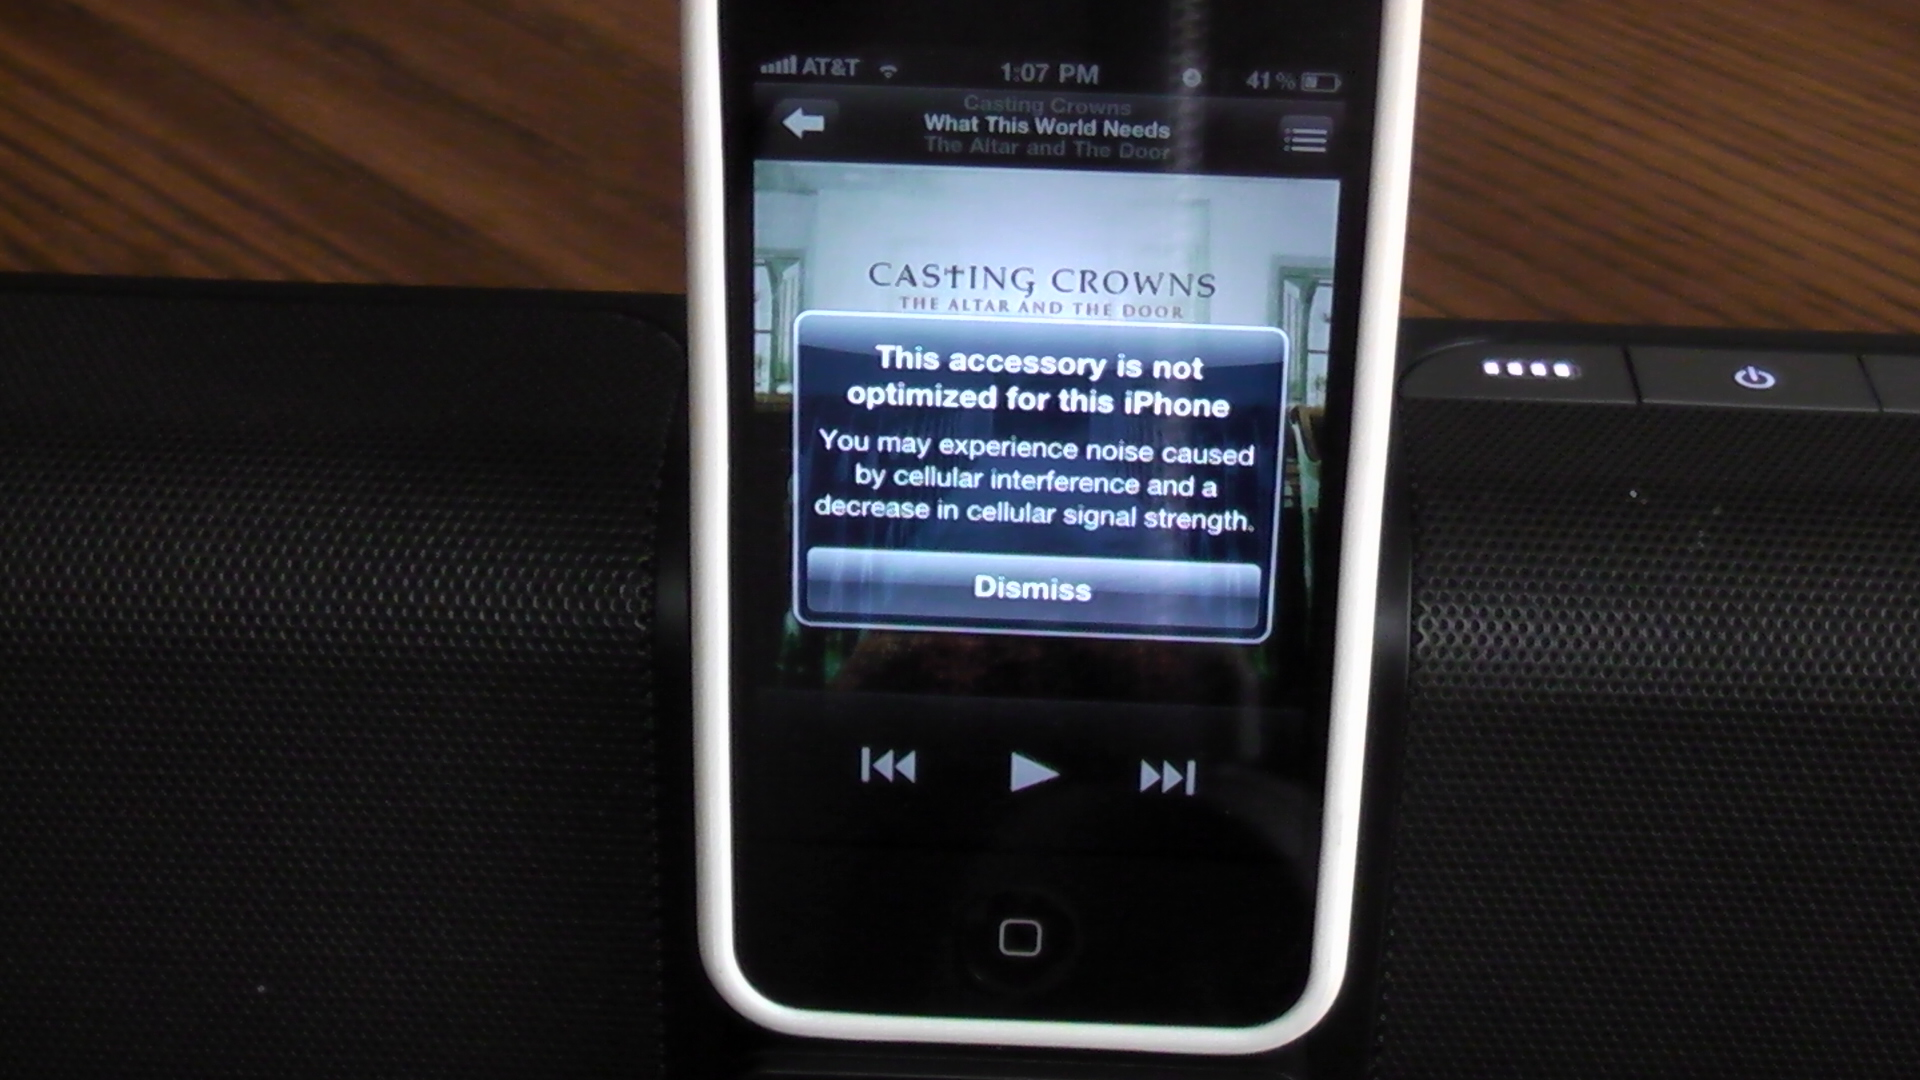 iHome iP46: Portable Audio for iPod and iPhone